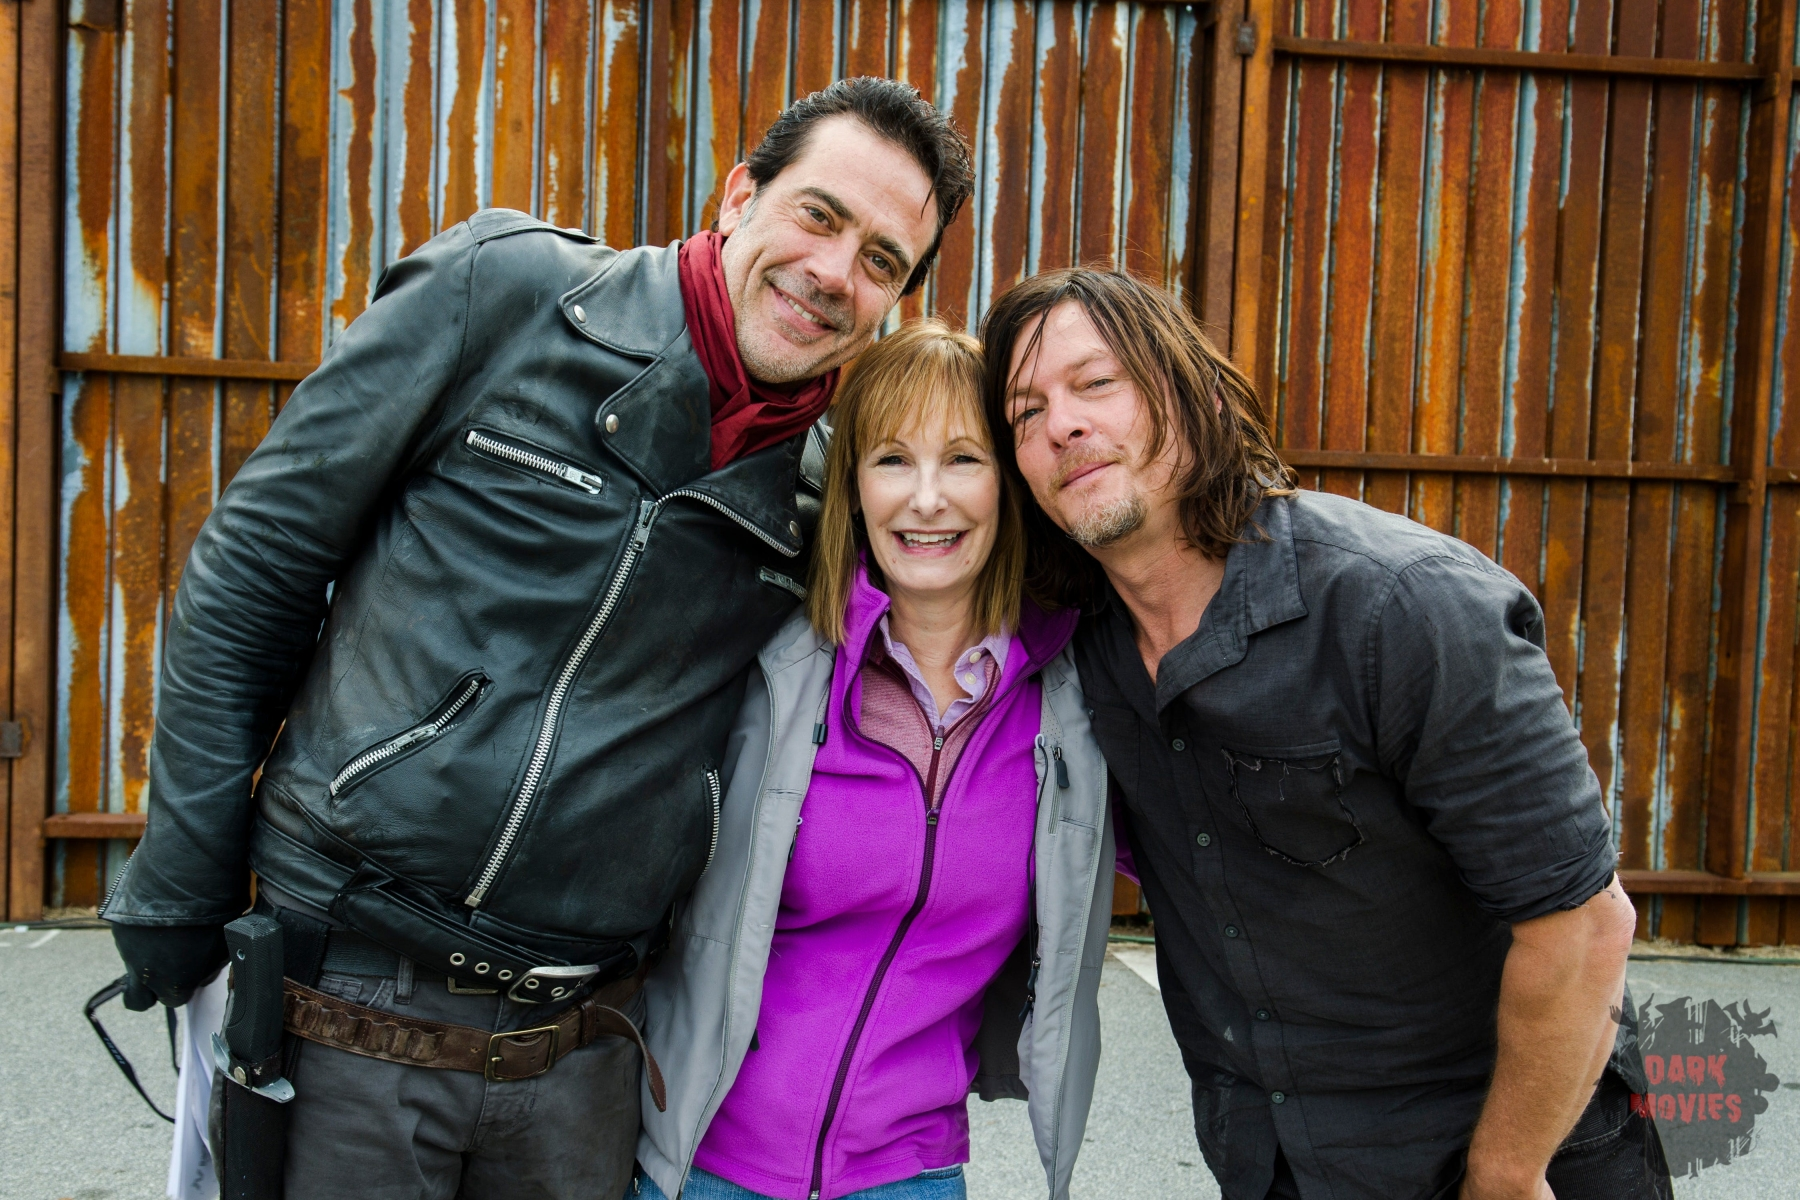 Jeffrey Dean Morgan as Negan, Norman Reedus as Daryl Dixon, Executive Producer Gale Anne Hurd - The Walking Dead _ Season 7, Episode 16 - Photo Credit: Gene Page/AMC